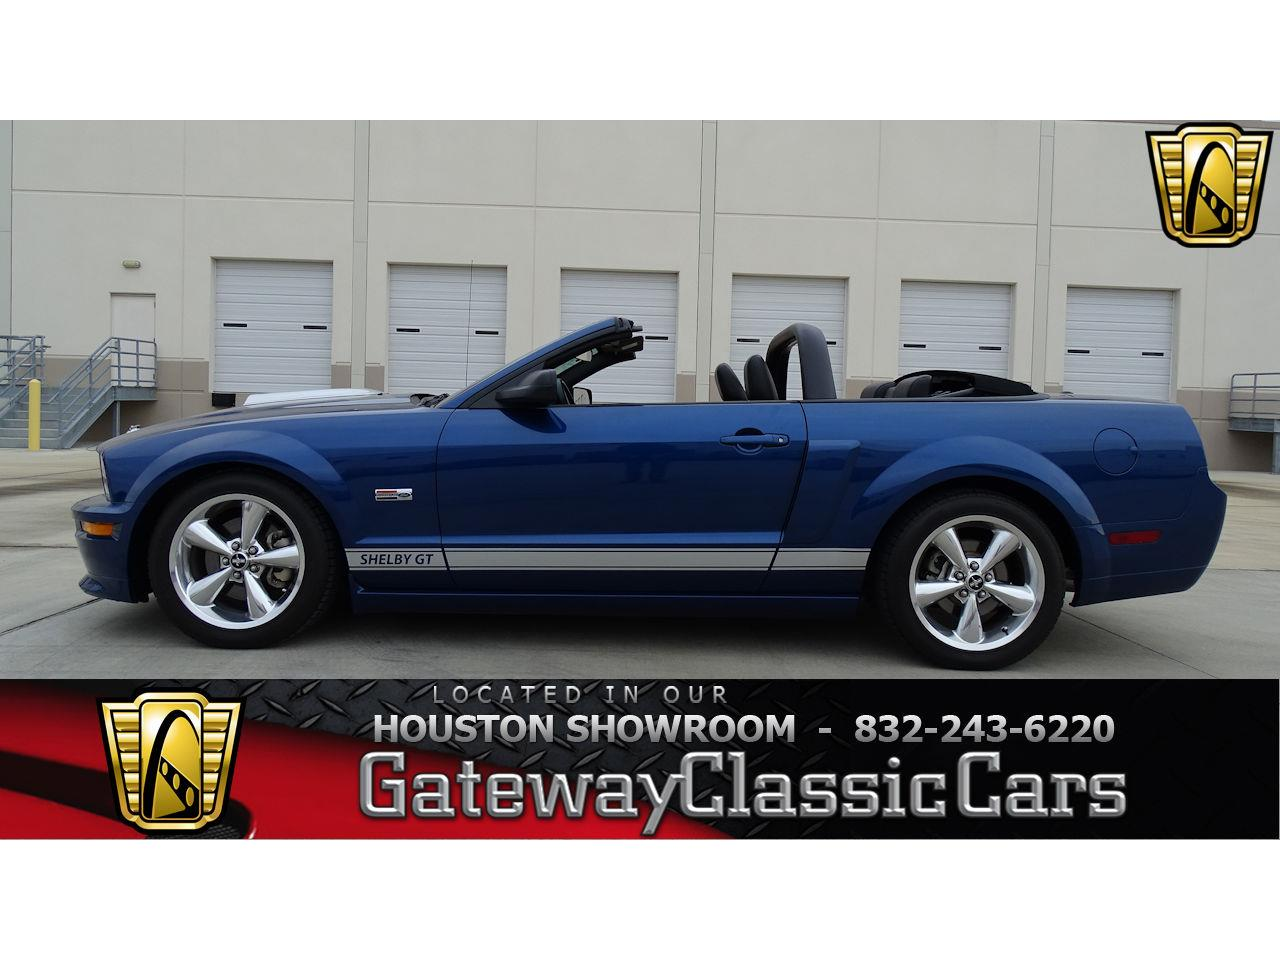 Large picture of 08 mustang mnu2